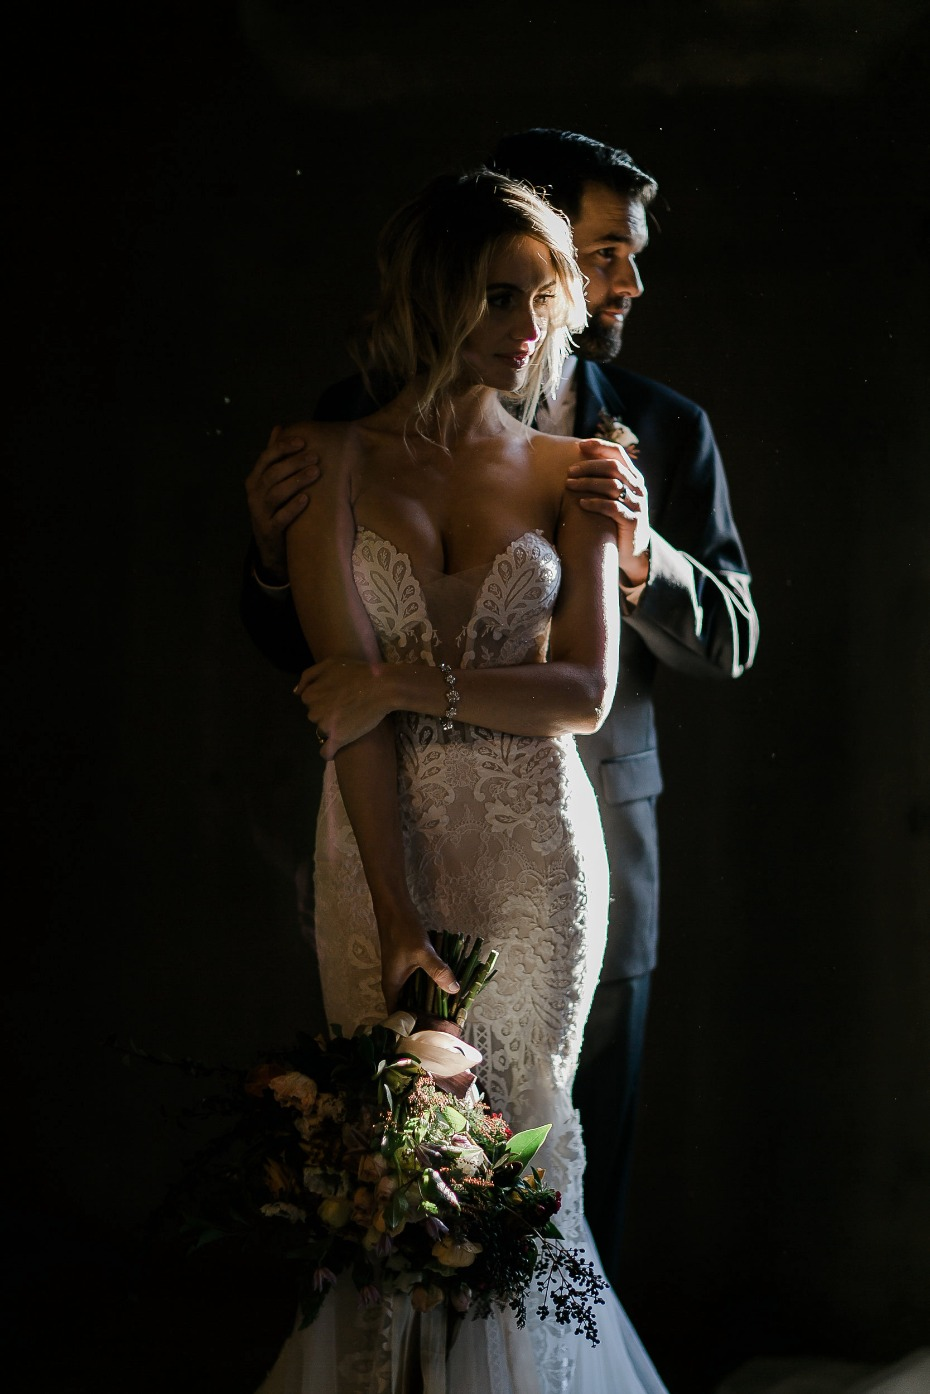 dramatic lighting for your wedding portraites